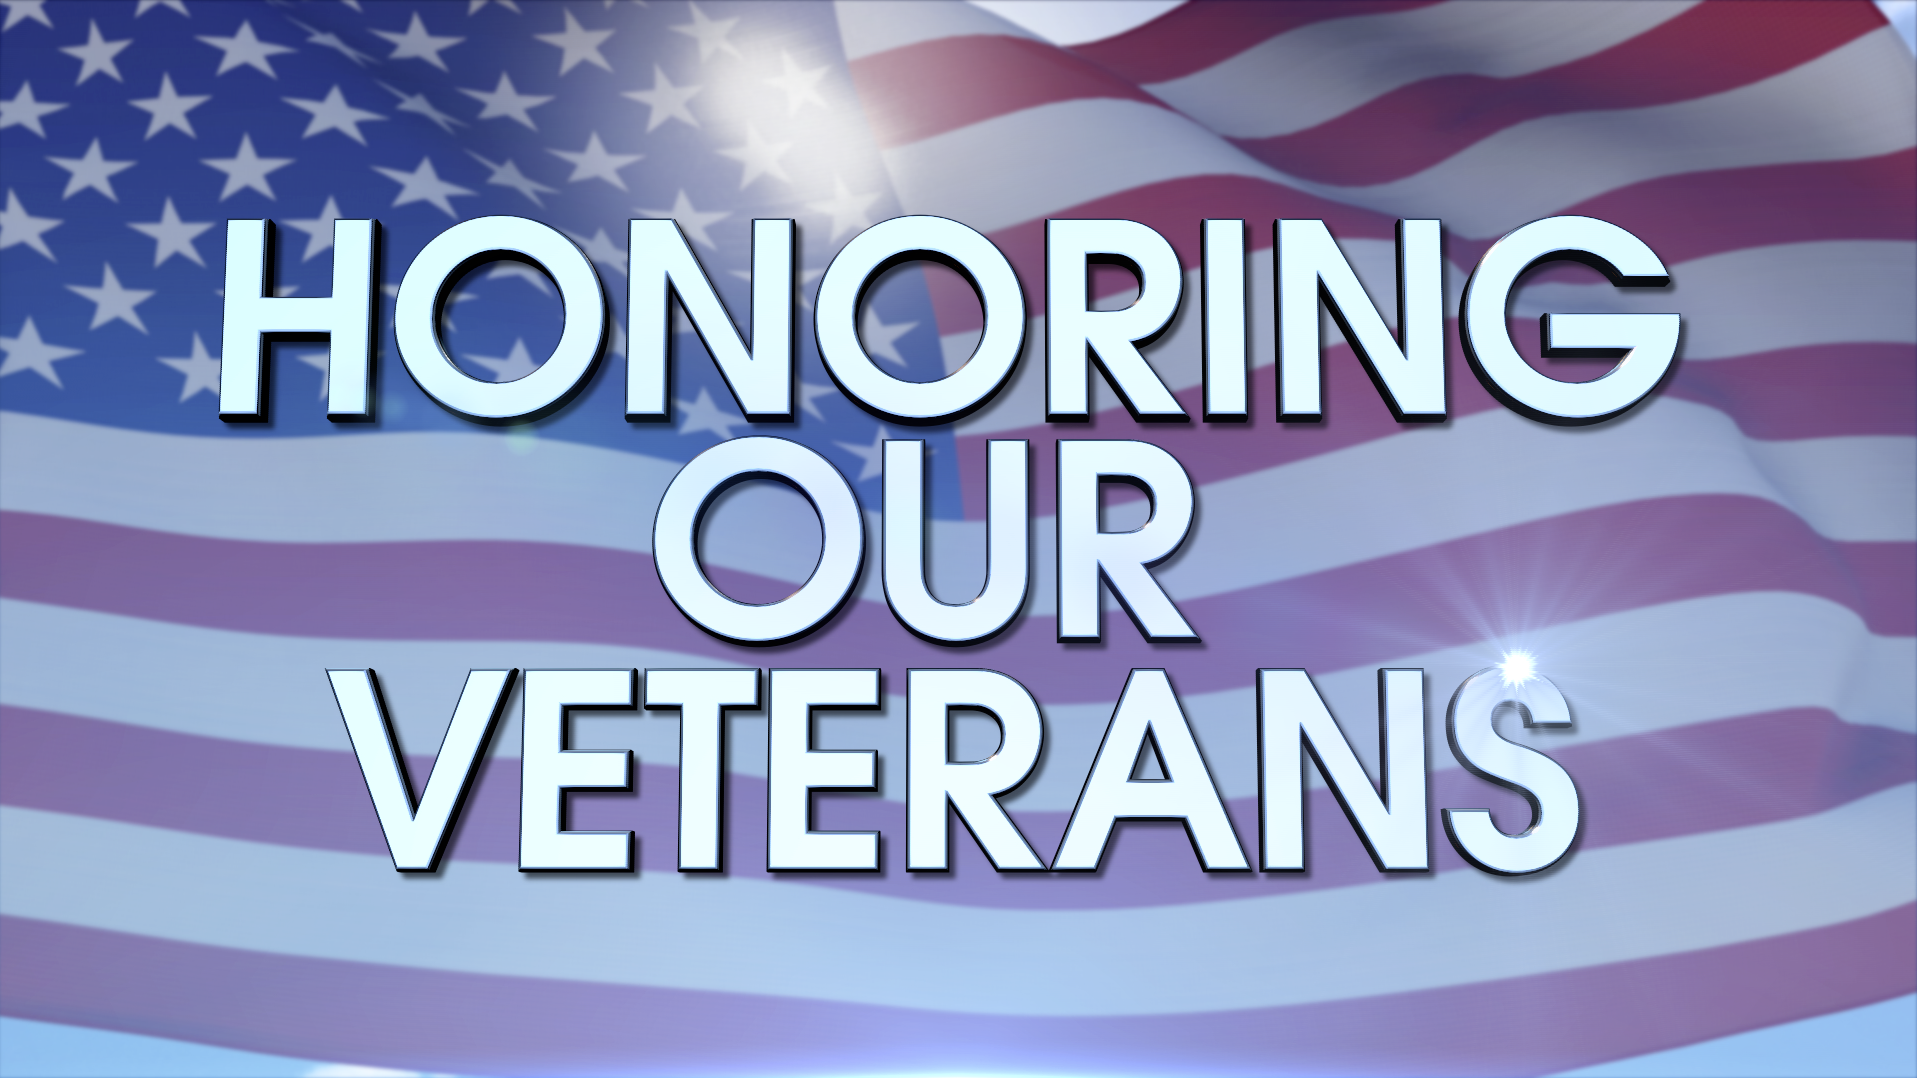 honoring-our-veterans.png